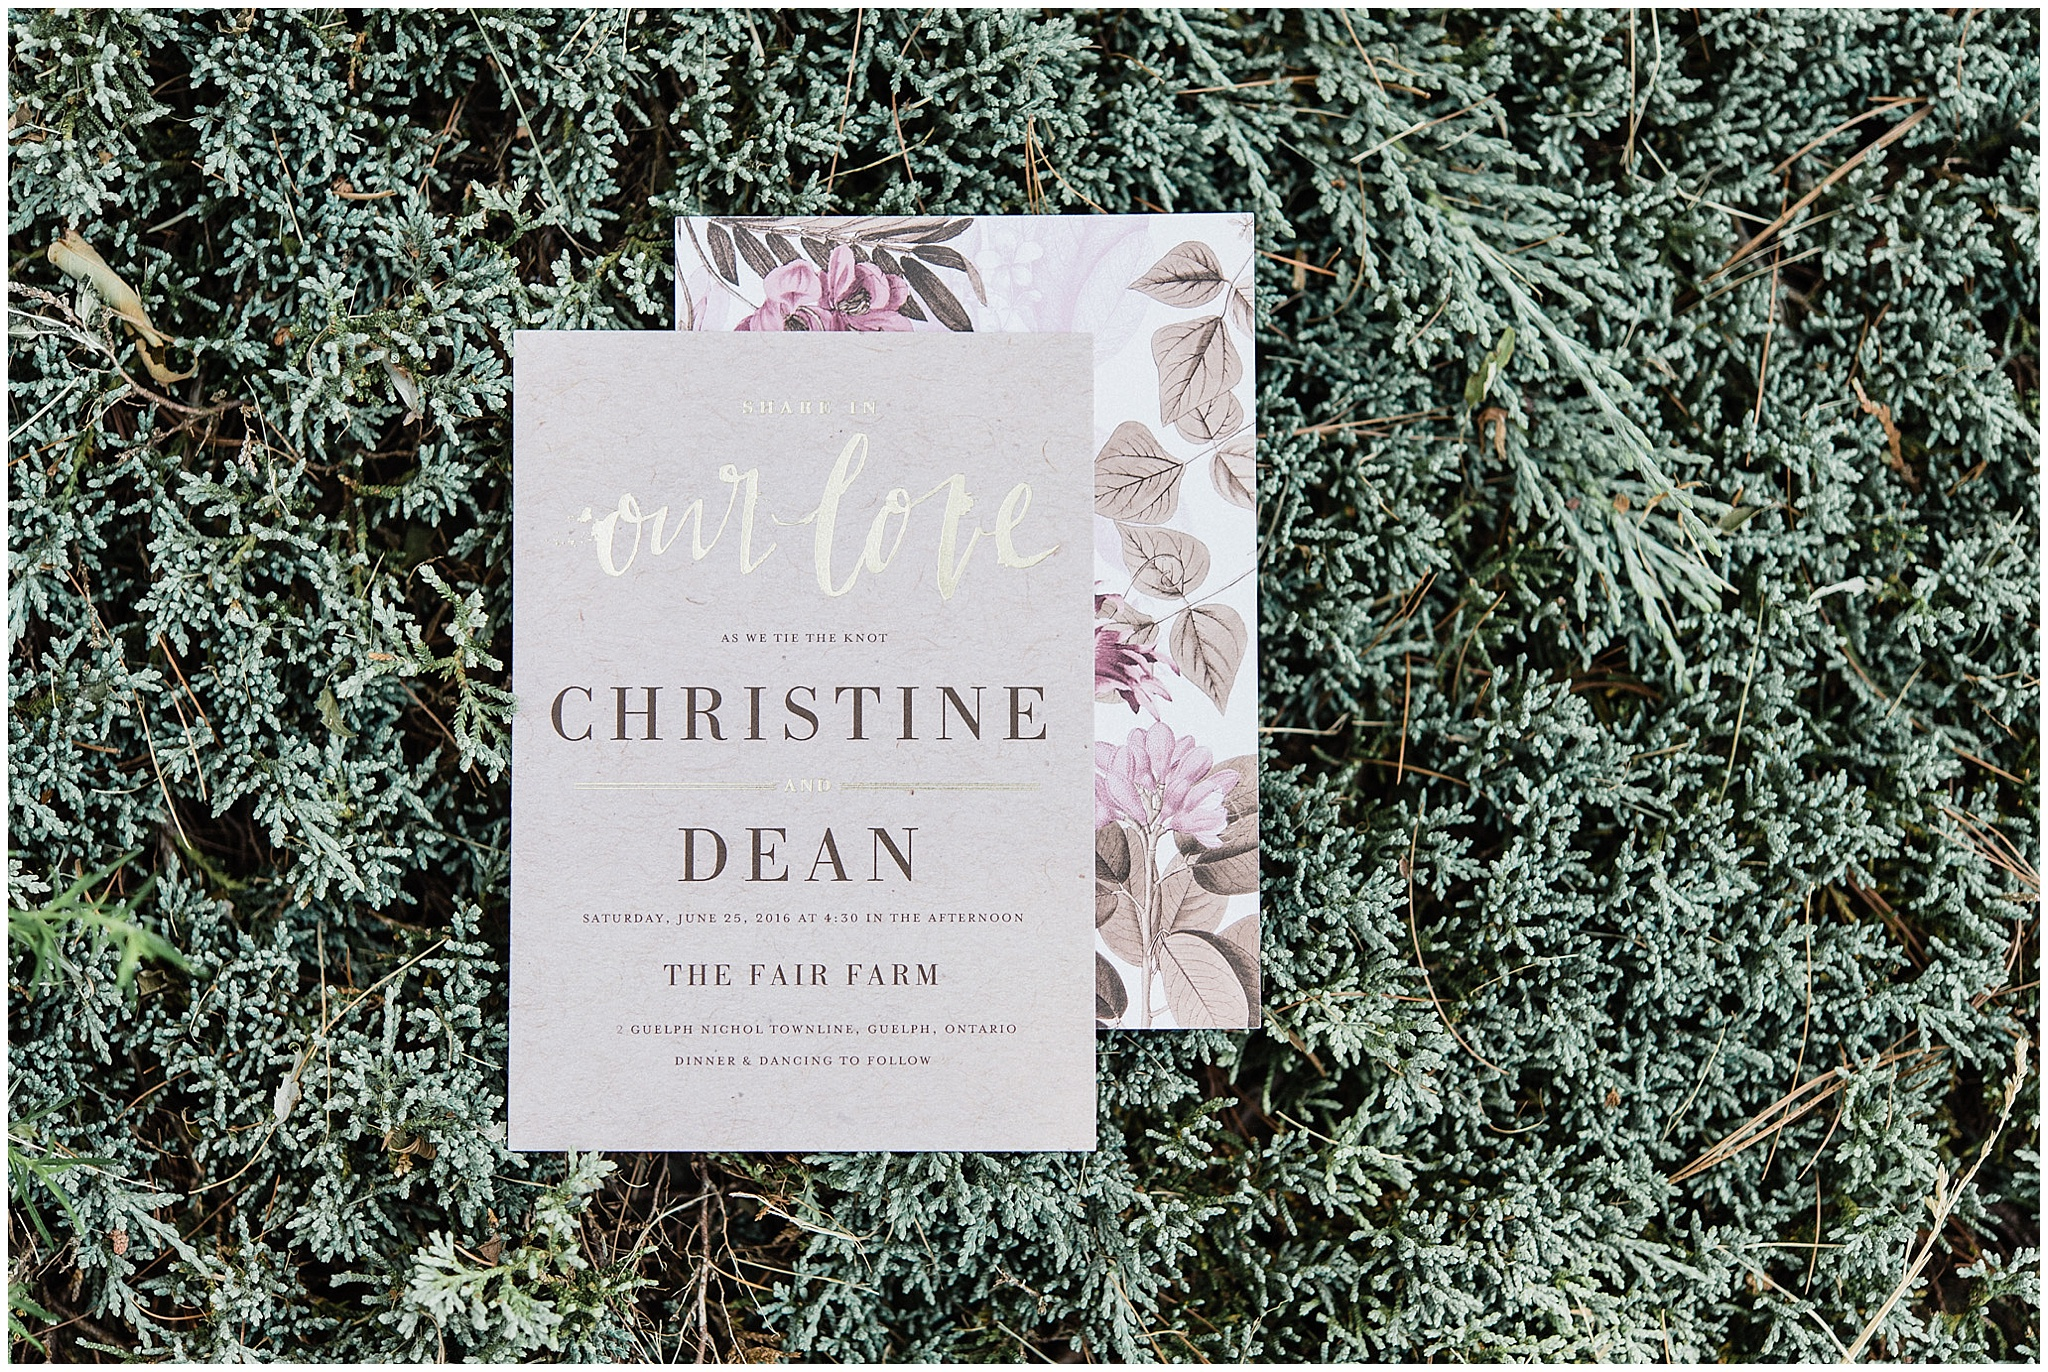 Wedding Paper Divas floral wedding invitation | Tent wedding on family farm in Guelph, Ontario by Jenn Kavanagh Photography